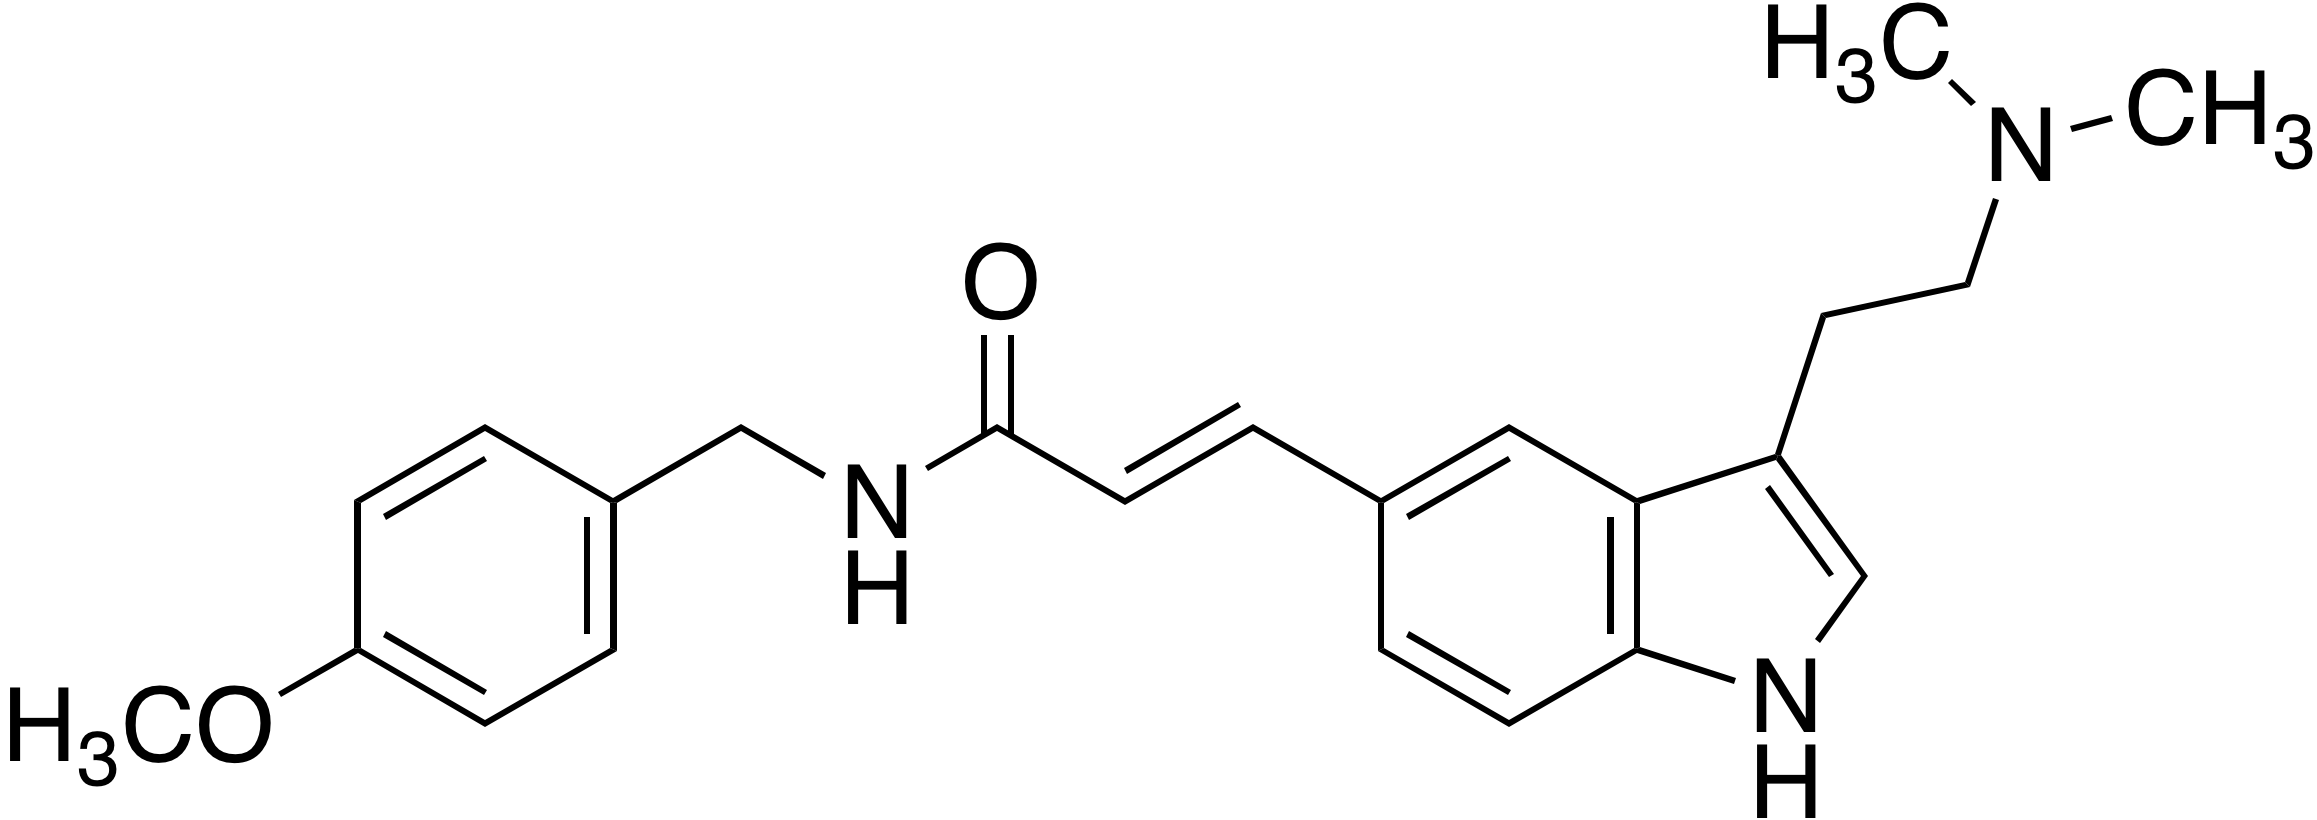 3-[3-(2-Dimethylaminoethyl)-1H-indol-5-yl]-N-(4-methoxybenzyl)acrylamide